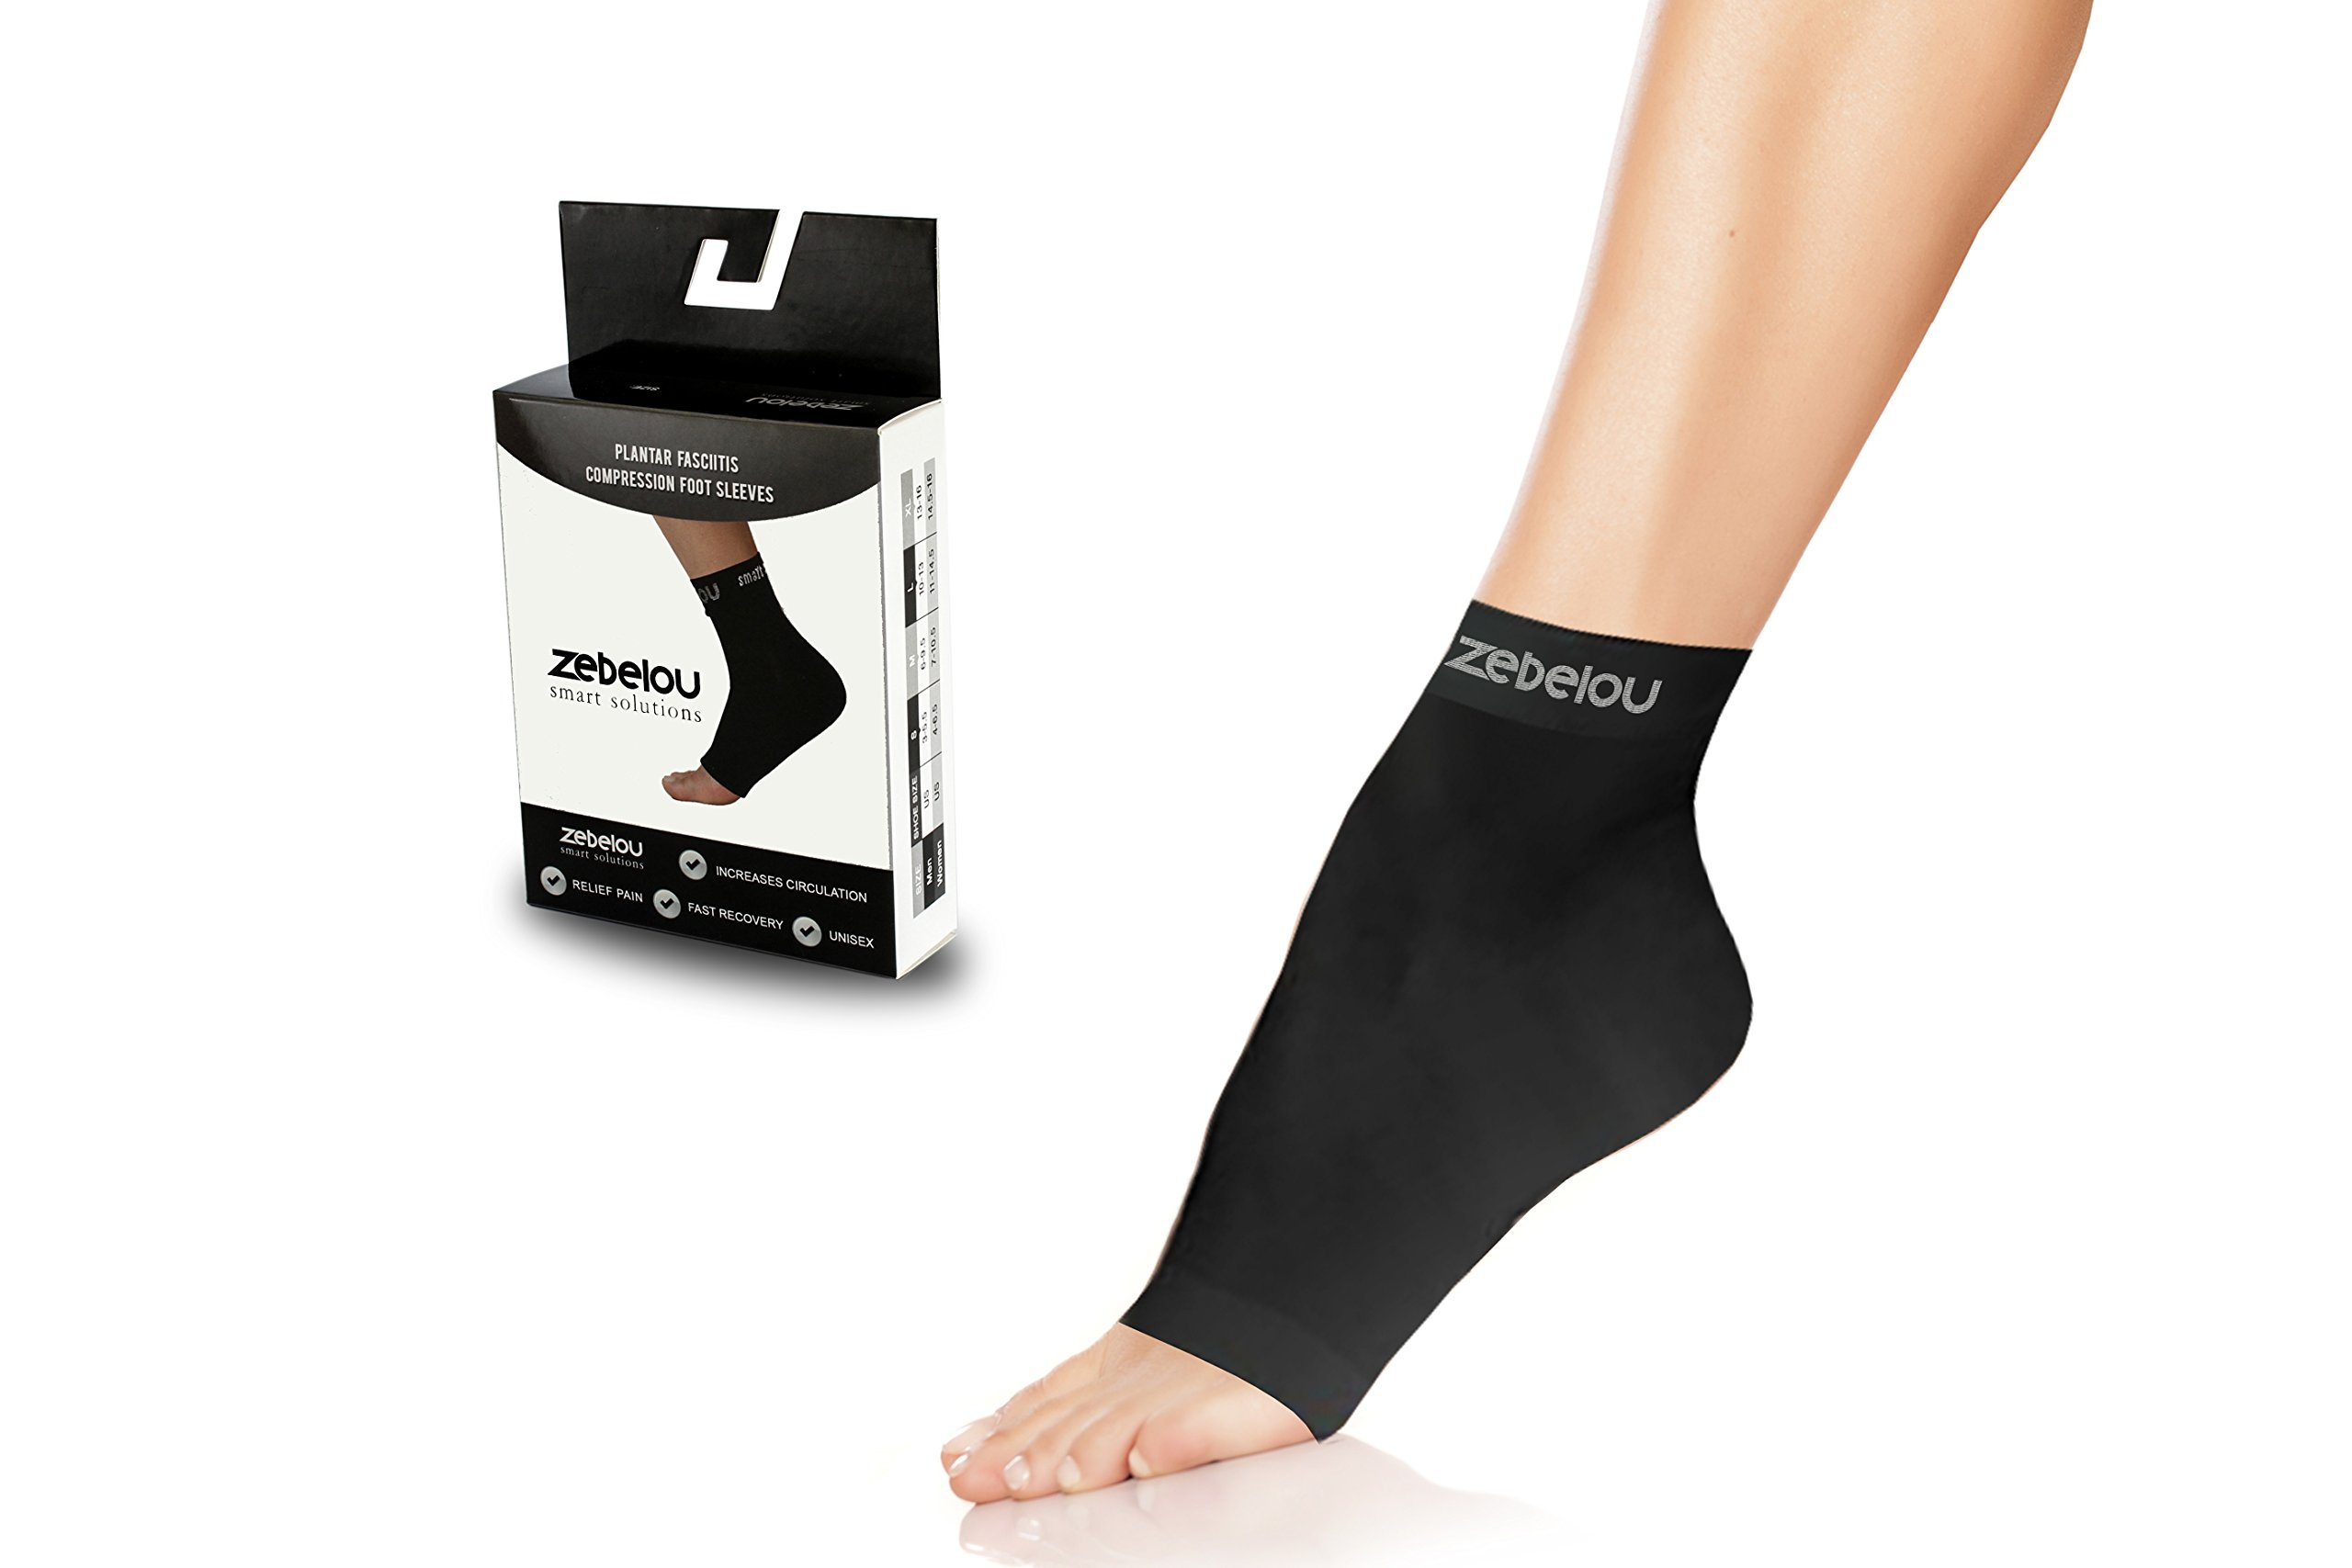 c0d809f2de Amazon.com: Zebelou Smart Solutions Plantar Fasciitis Foot Compression Socks  with Arch & Ankle Support for Women & Men - Best Foot Care Compression Socks  ...